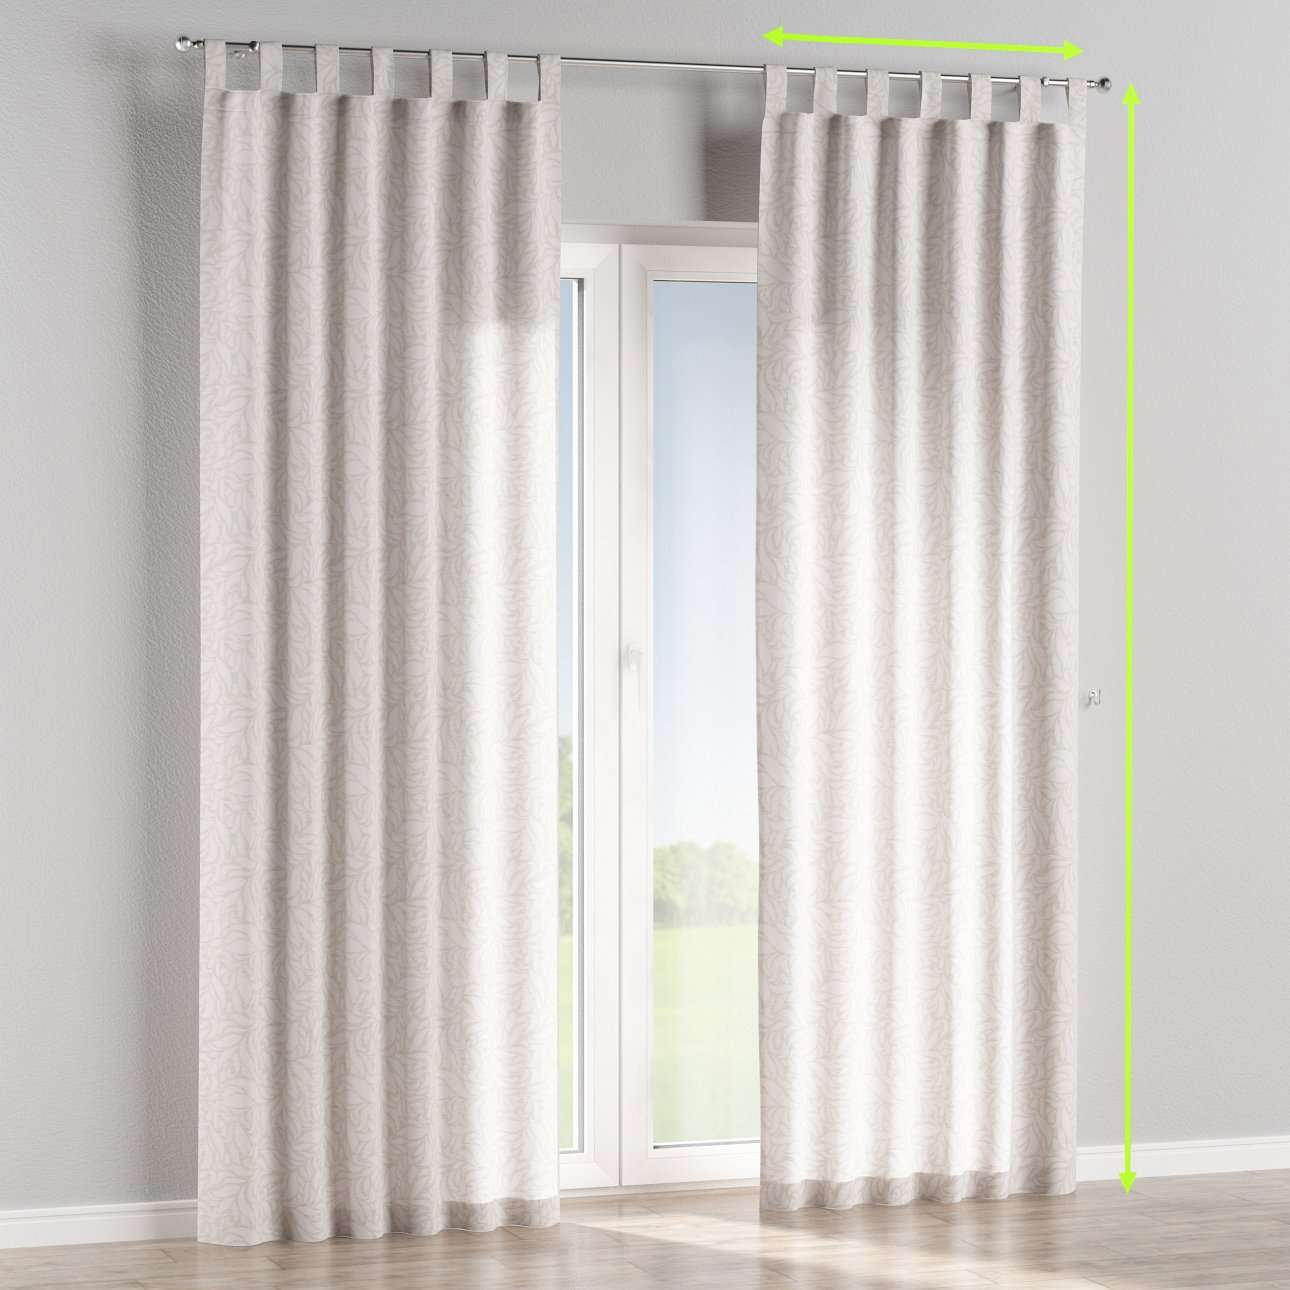 Tab top lined curtains in collection Venice, fabric: 140-50